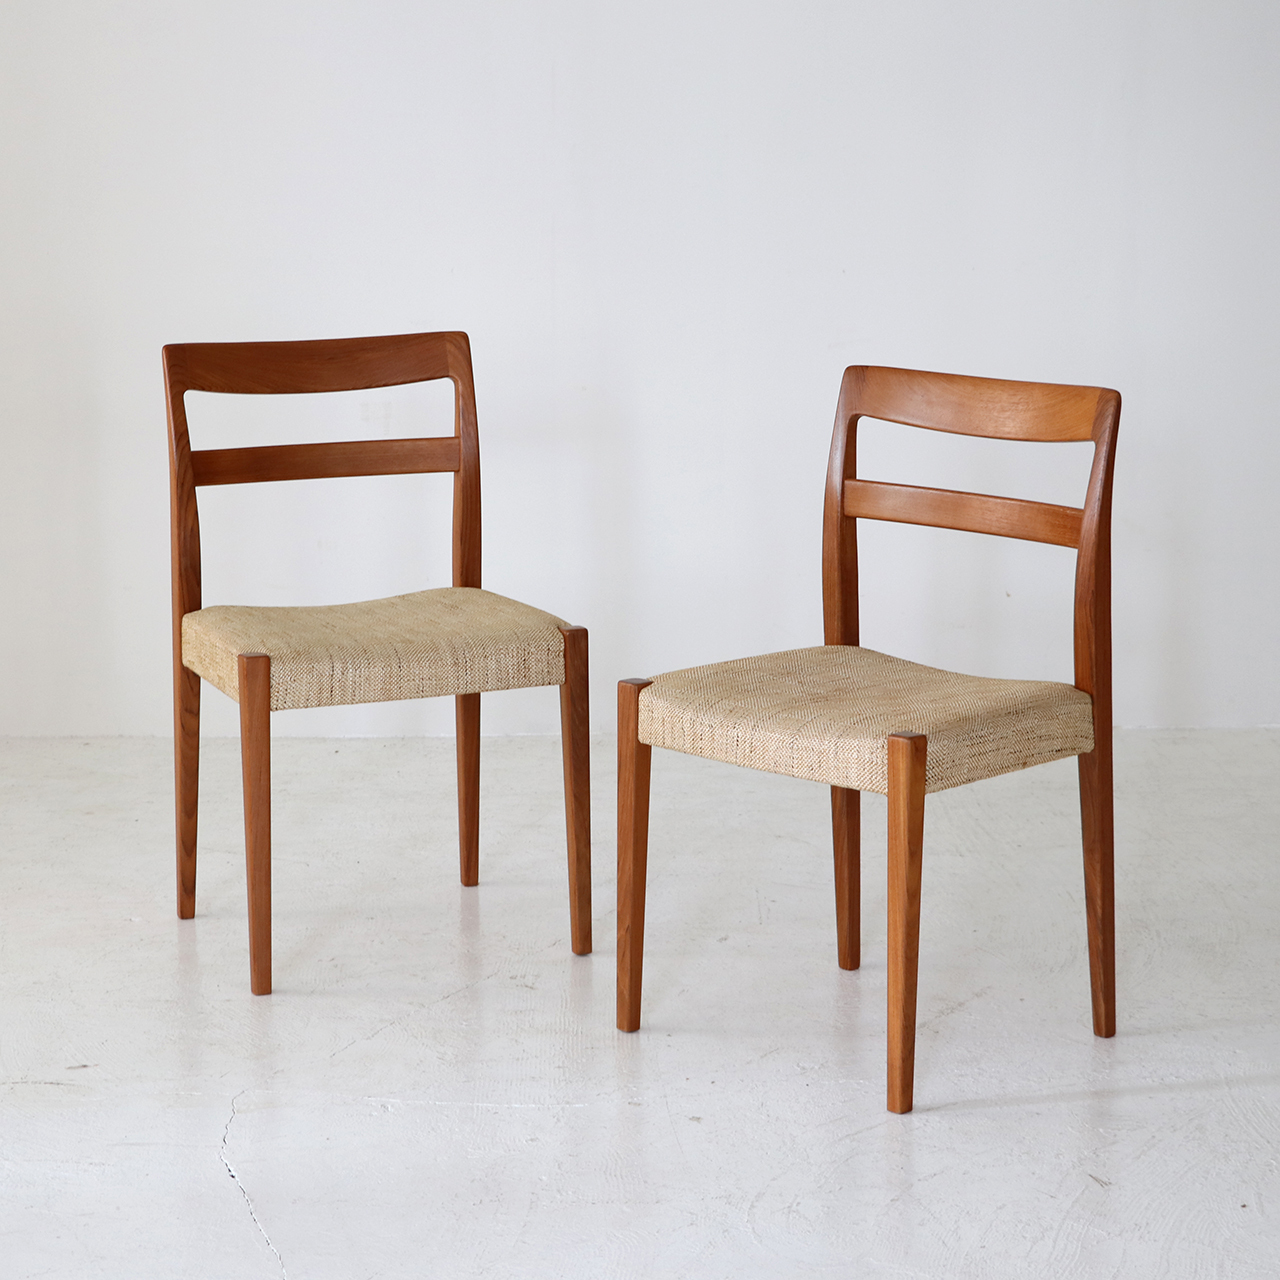 Dining chair(set of 2) / Nils Jonsson for Troeds